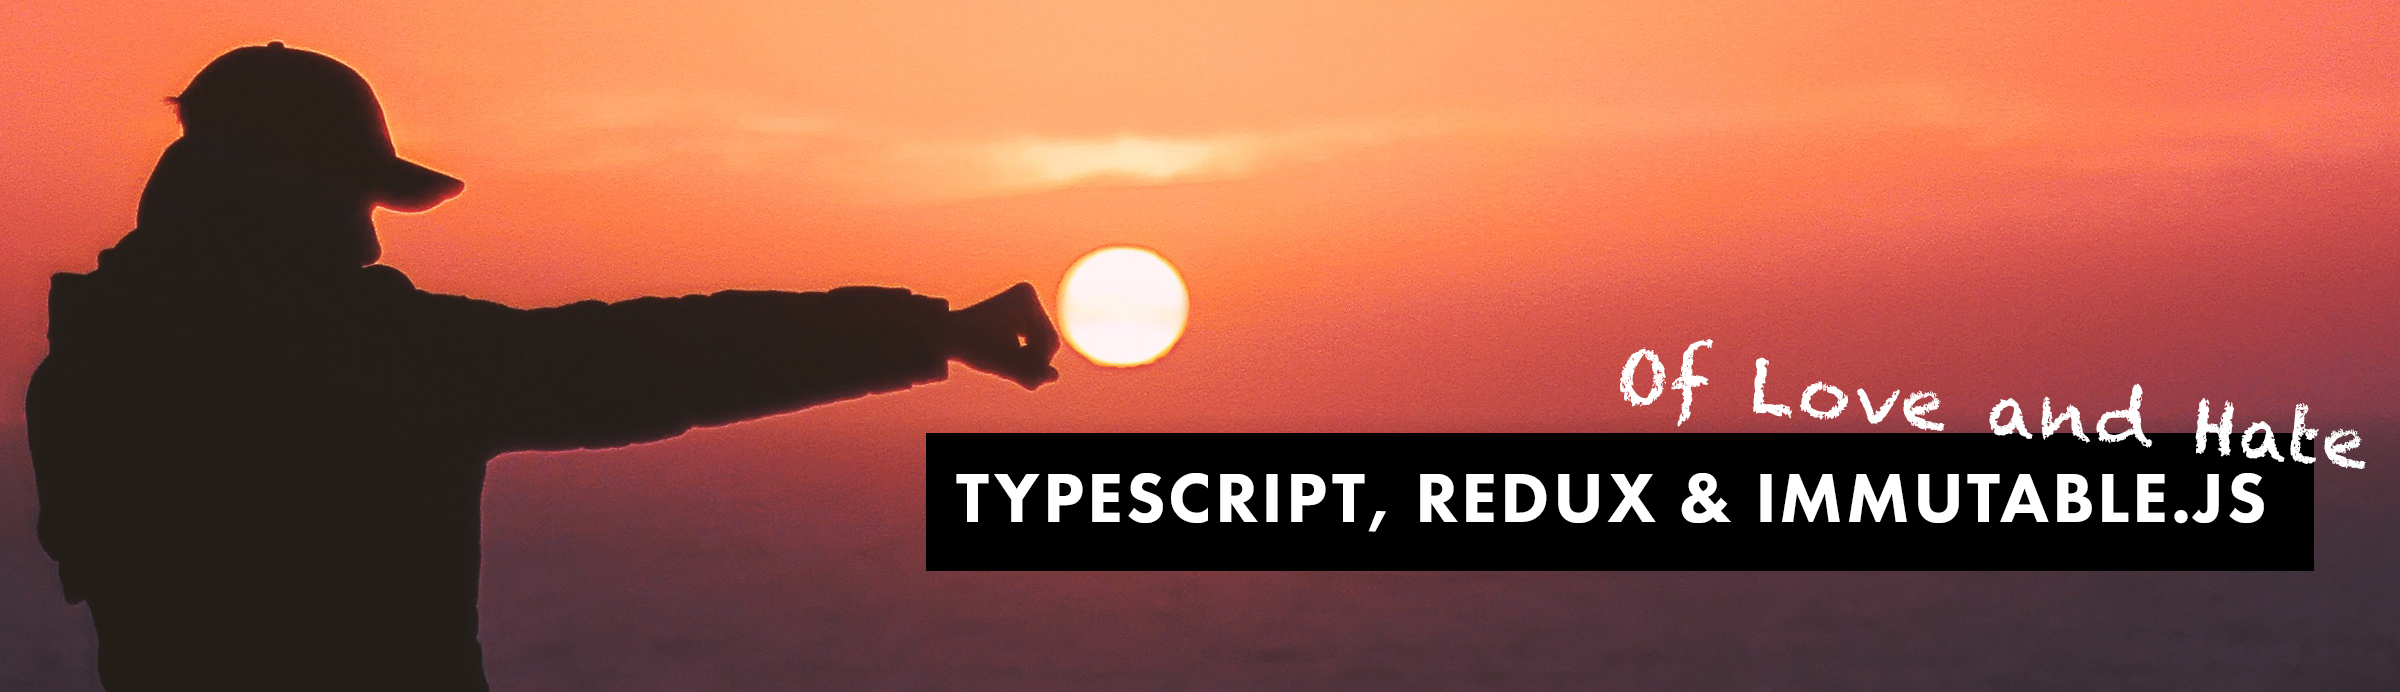 Of Love and Hate: TypeScript, Redux and immutable js